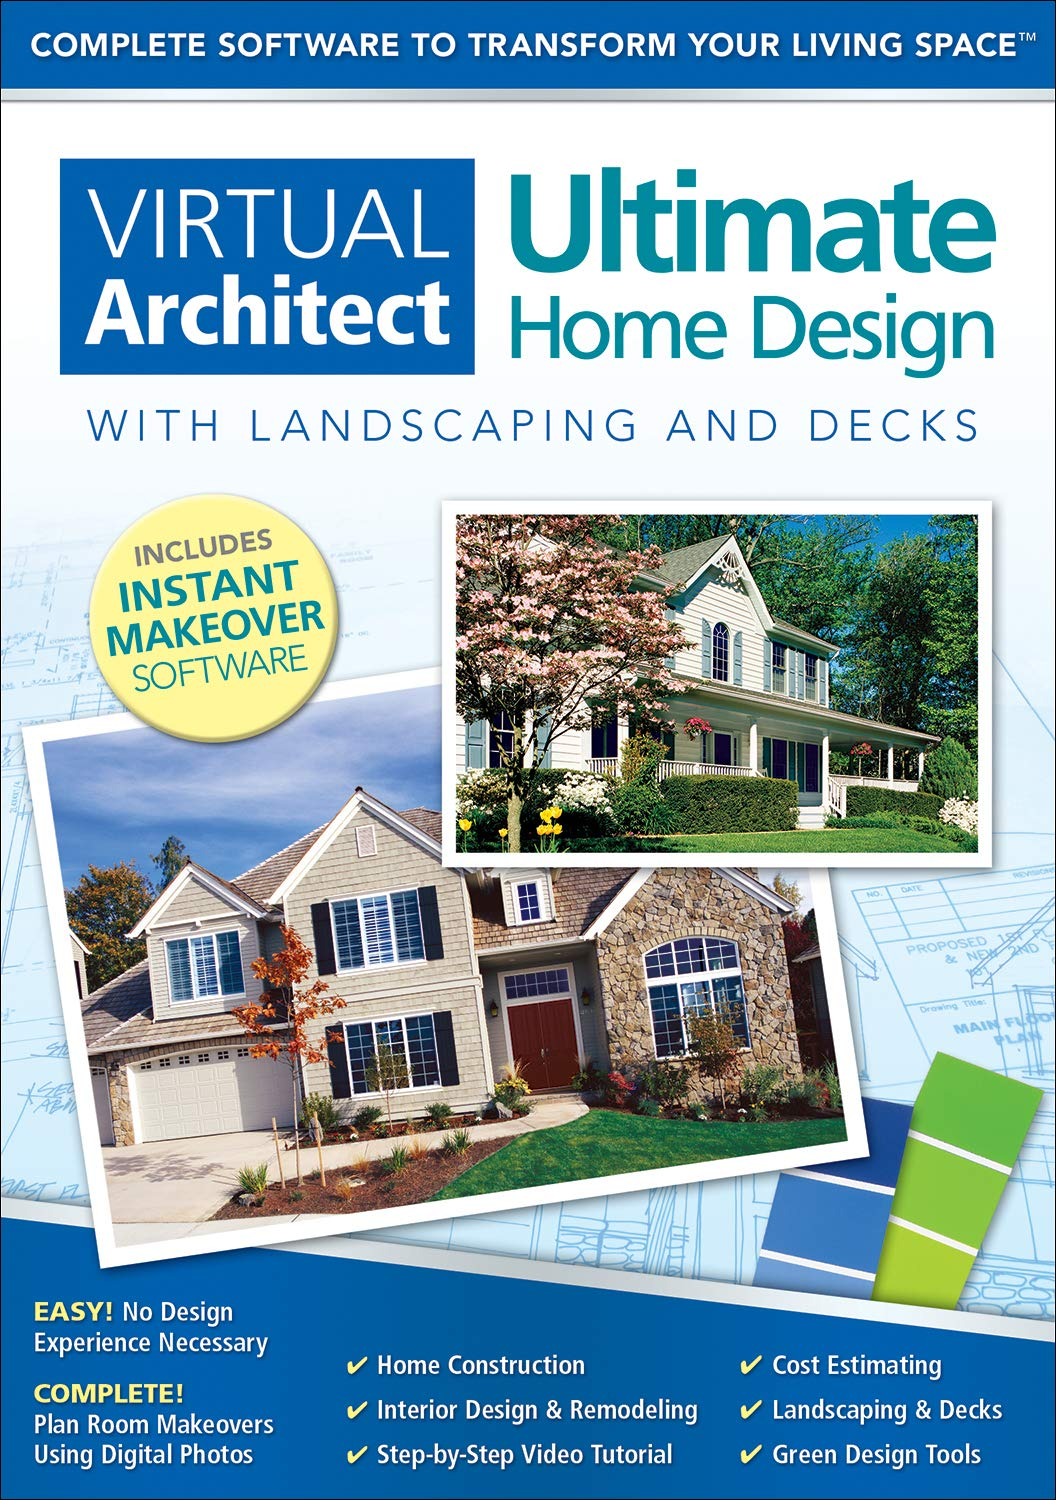 Virtual Architect Ultimate Home Design with Landscaping and Decks 8.0 [Download] by Nova Development US